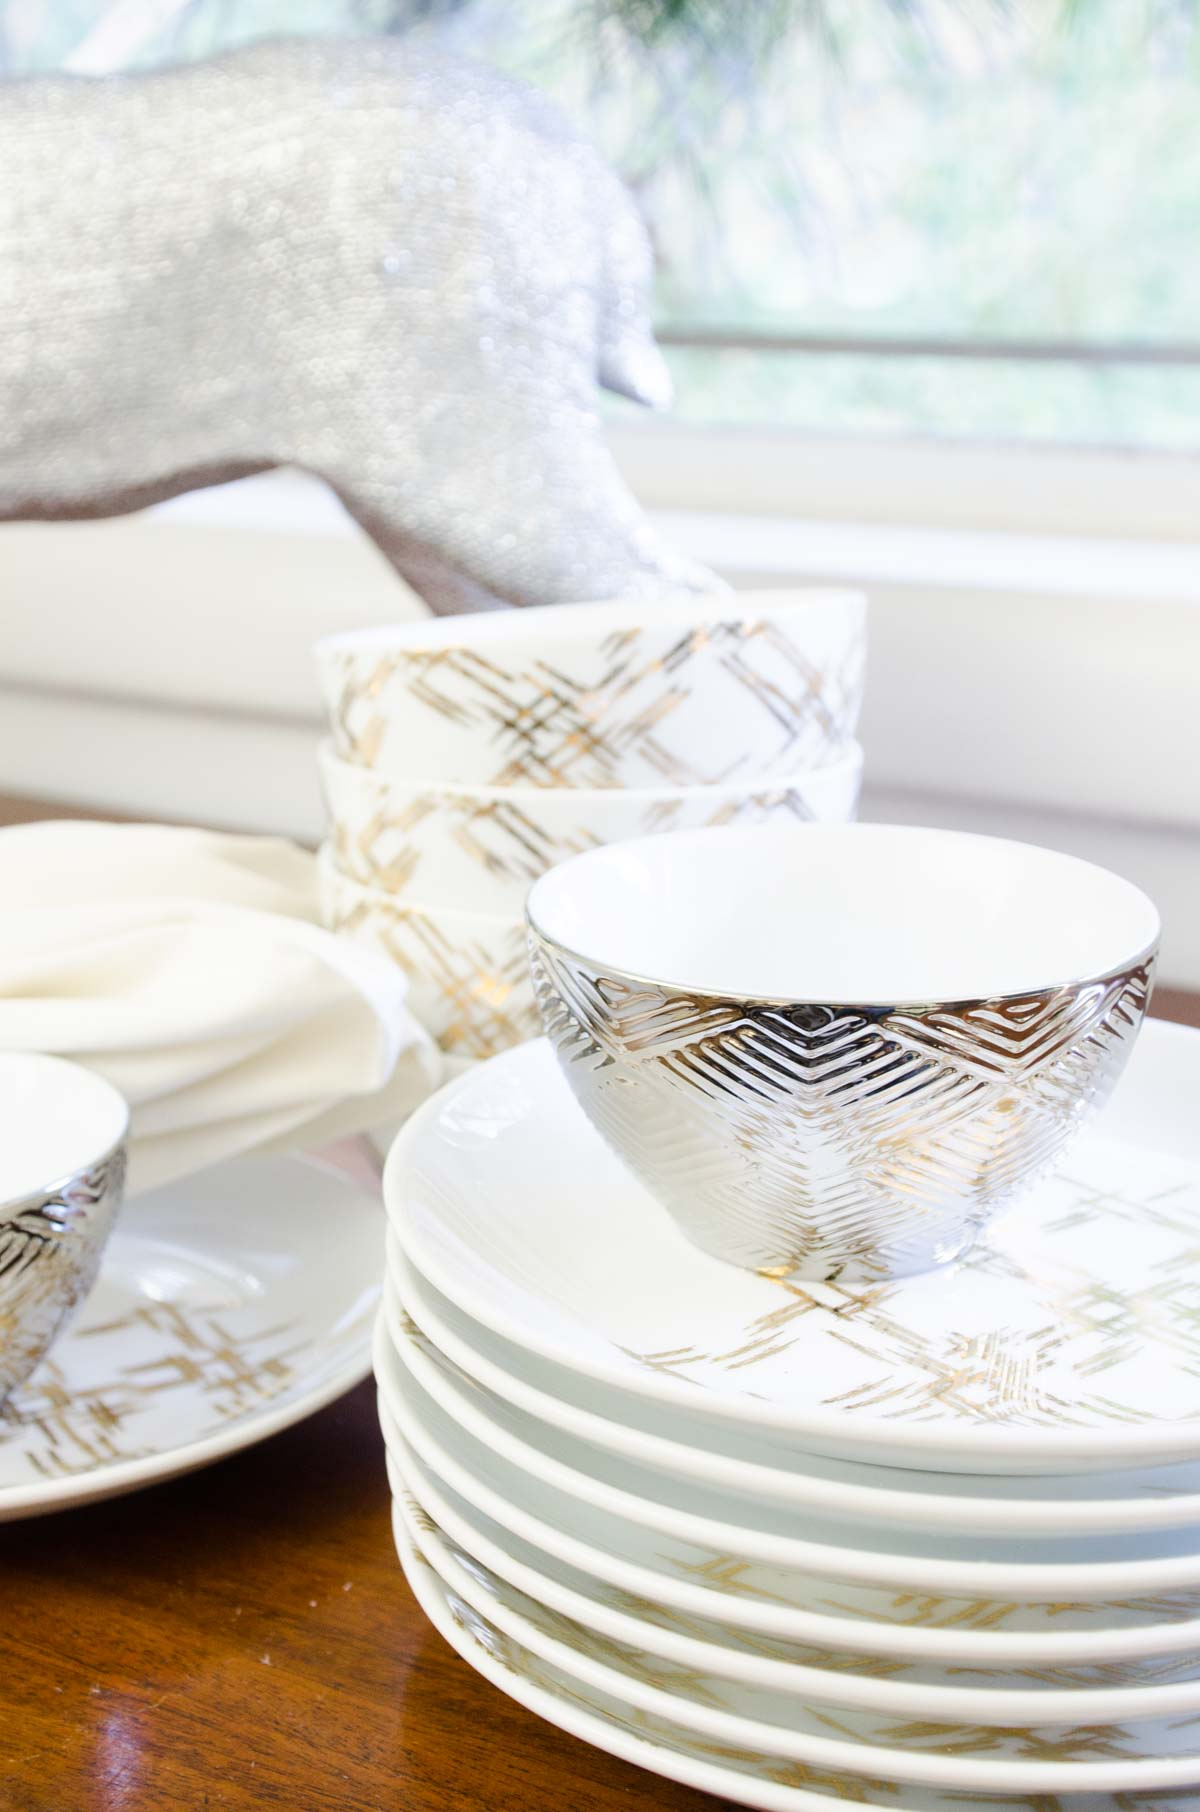 Bowls and plates for easy holiday entertaining on the buffet